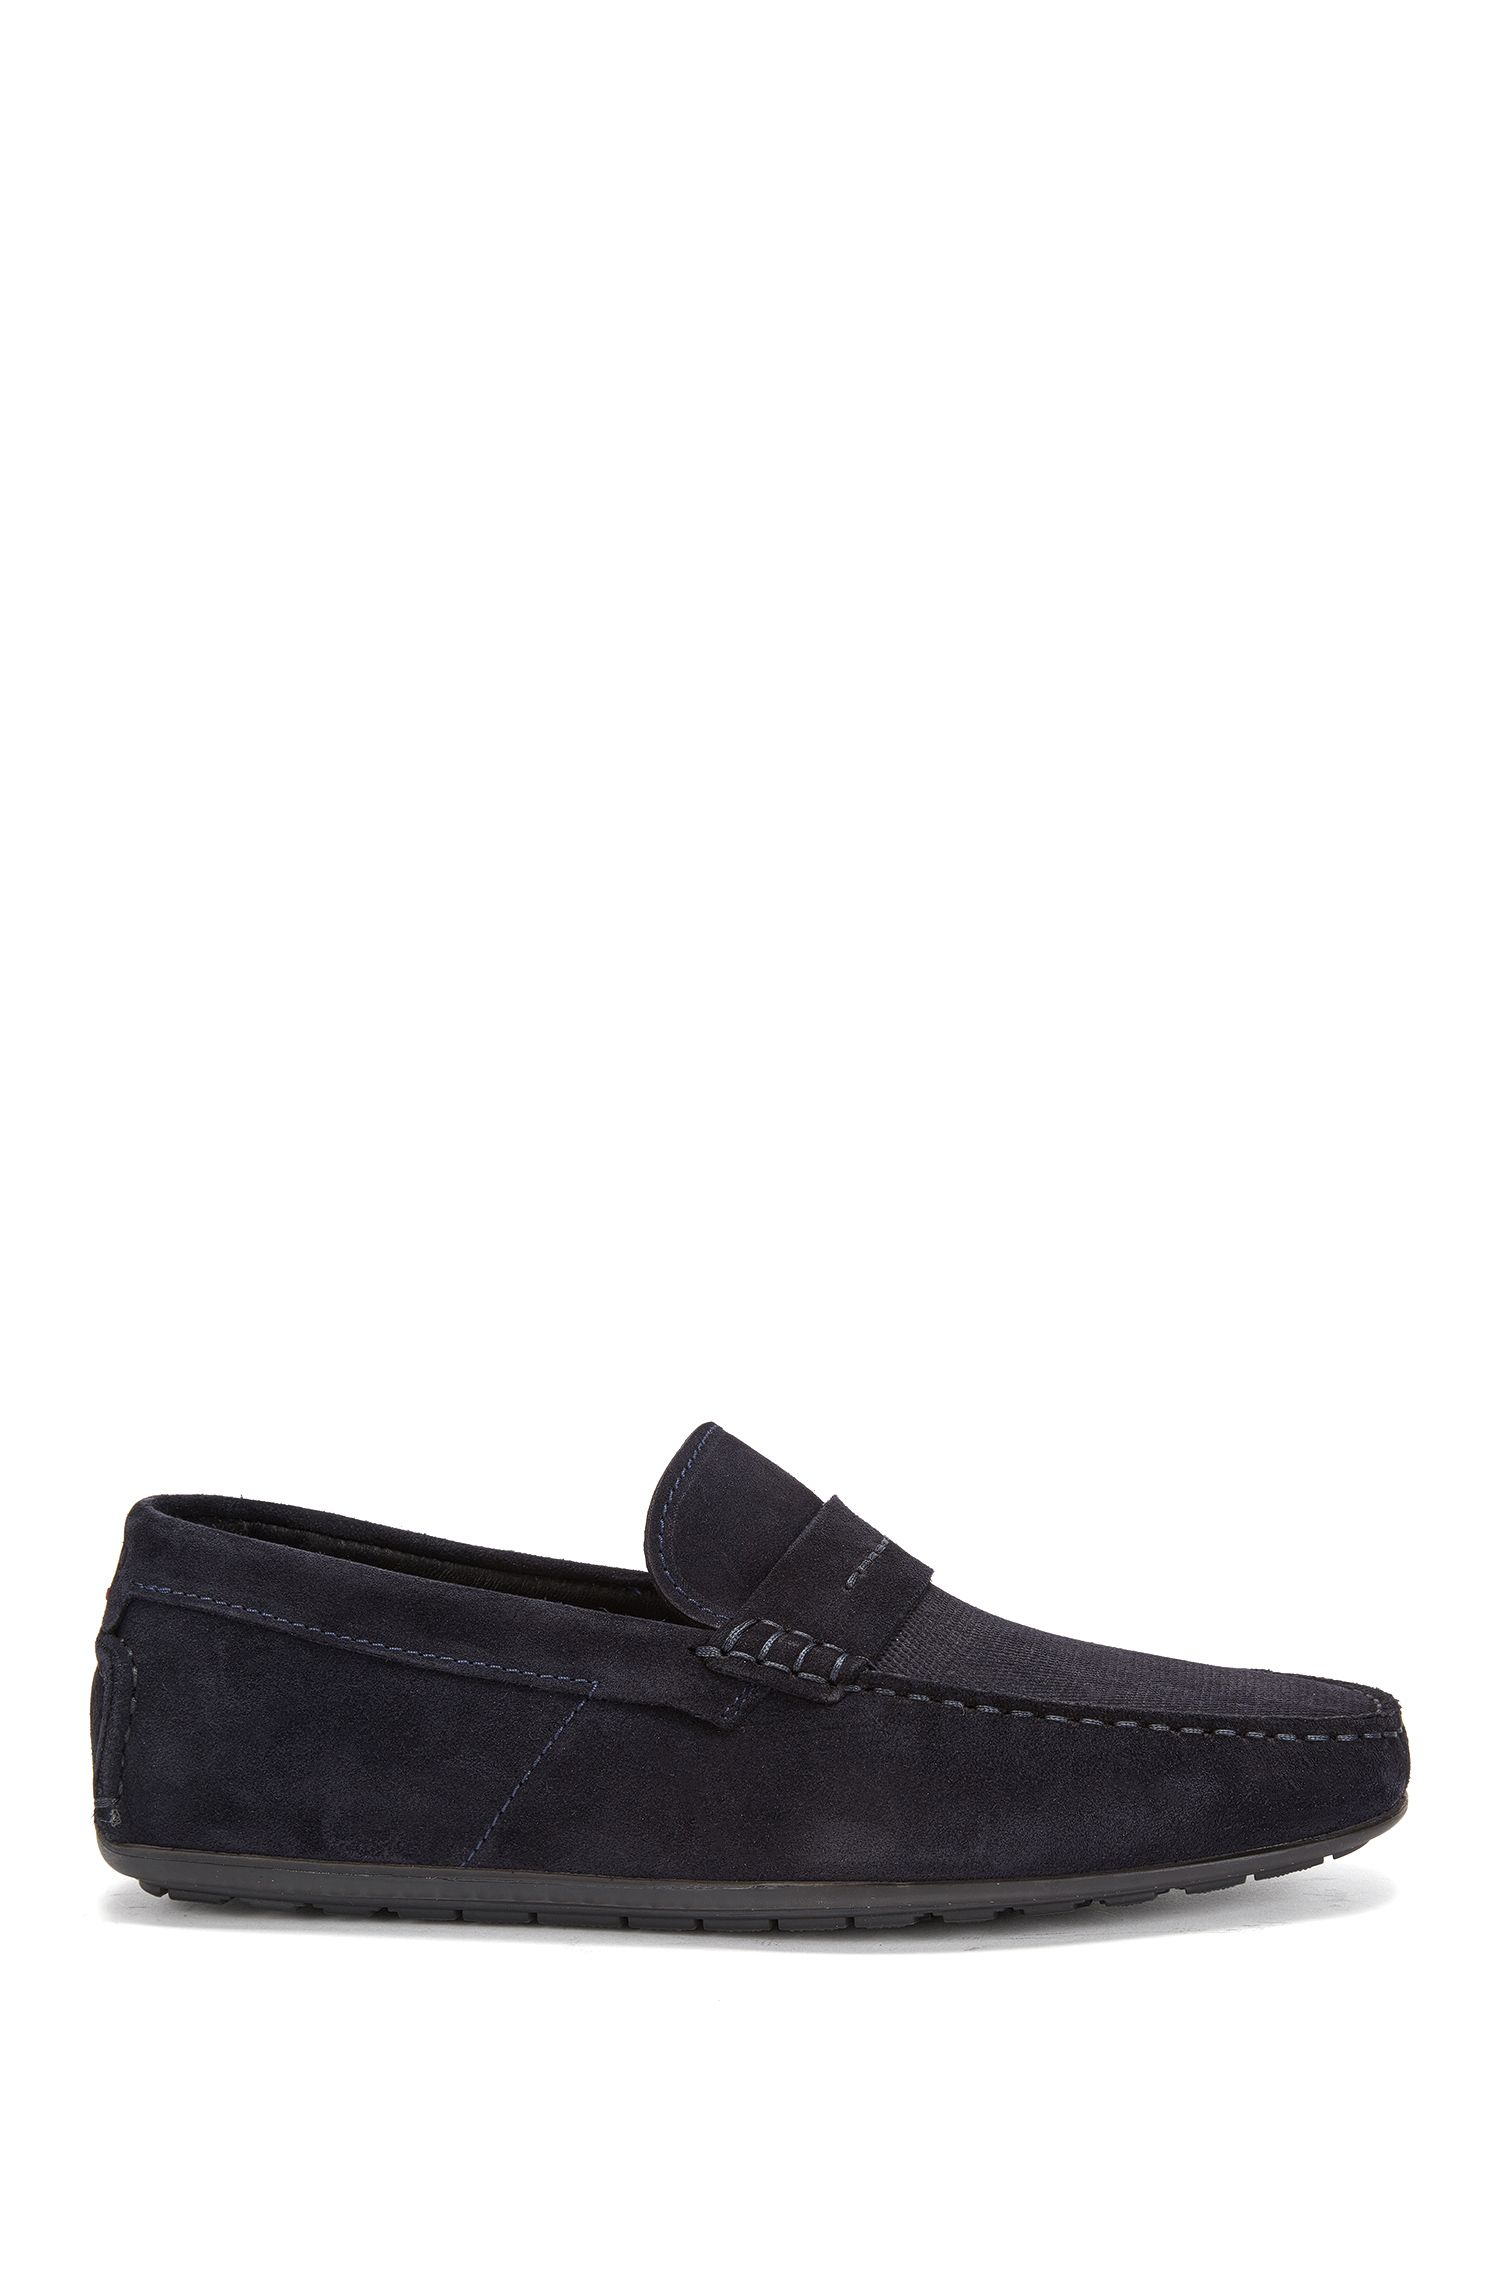 Mocassini slip-on in pelle scamosciata italiana